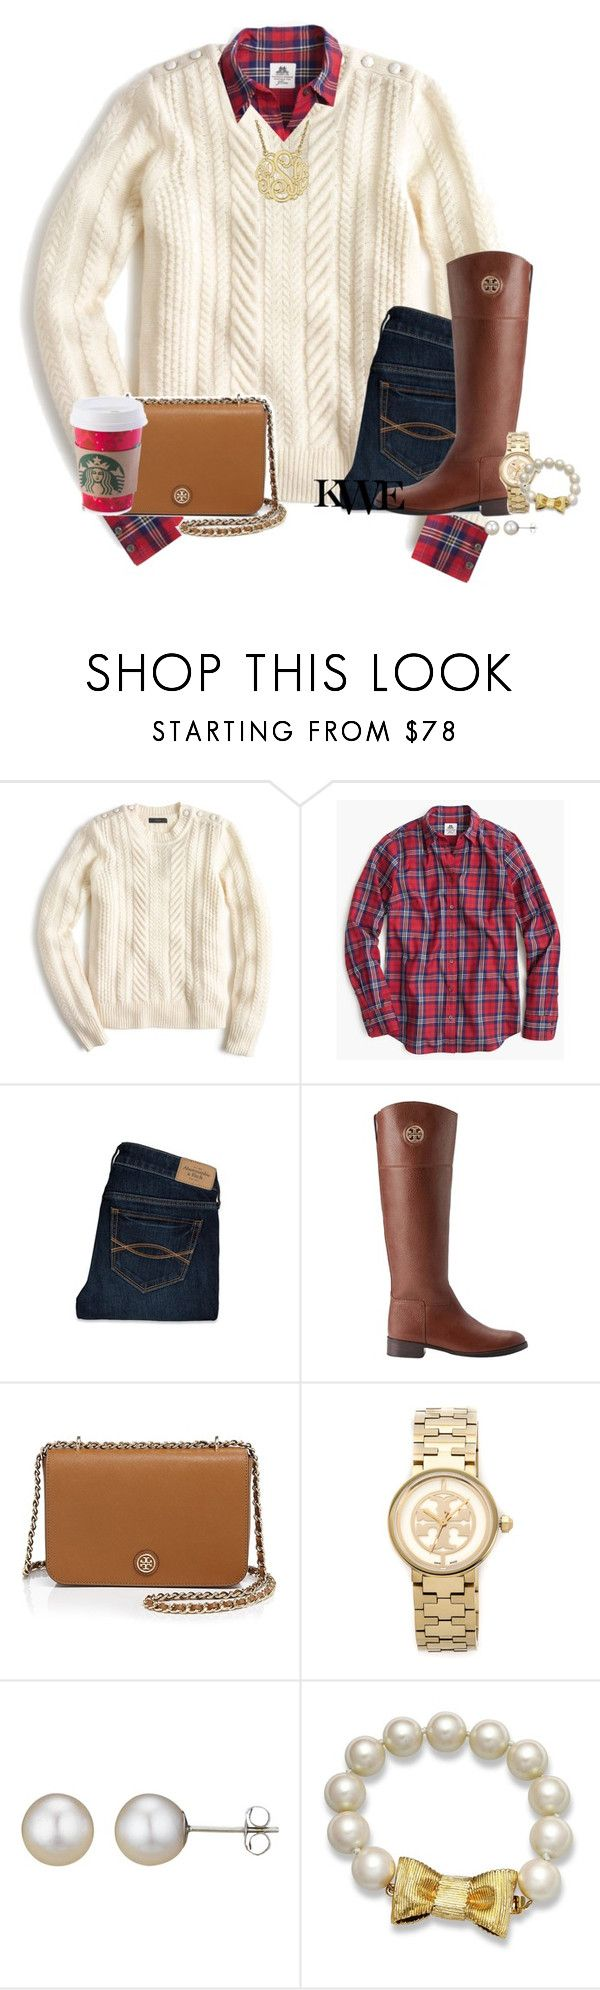 """Don't let boys get in the ways of your Family, Freinds, or Grades. It's not worth it."" by preppy-southern-gals ❤ liked on Polyvore featuring J.Crew, Thomas Mason, Abercrombie & Fitch, Tory Burch, A B Davis and Kate Spade"